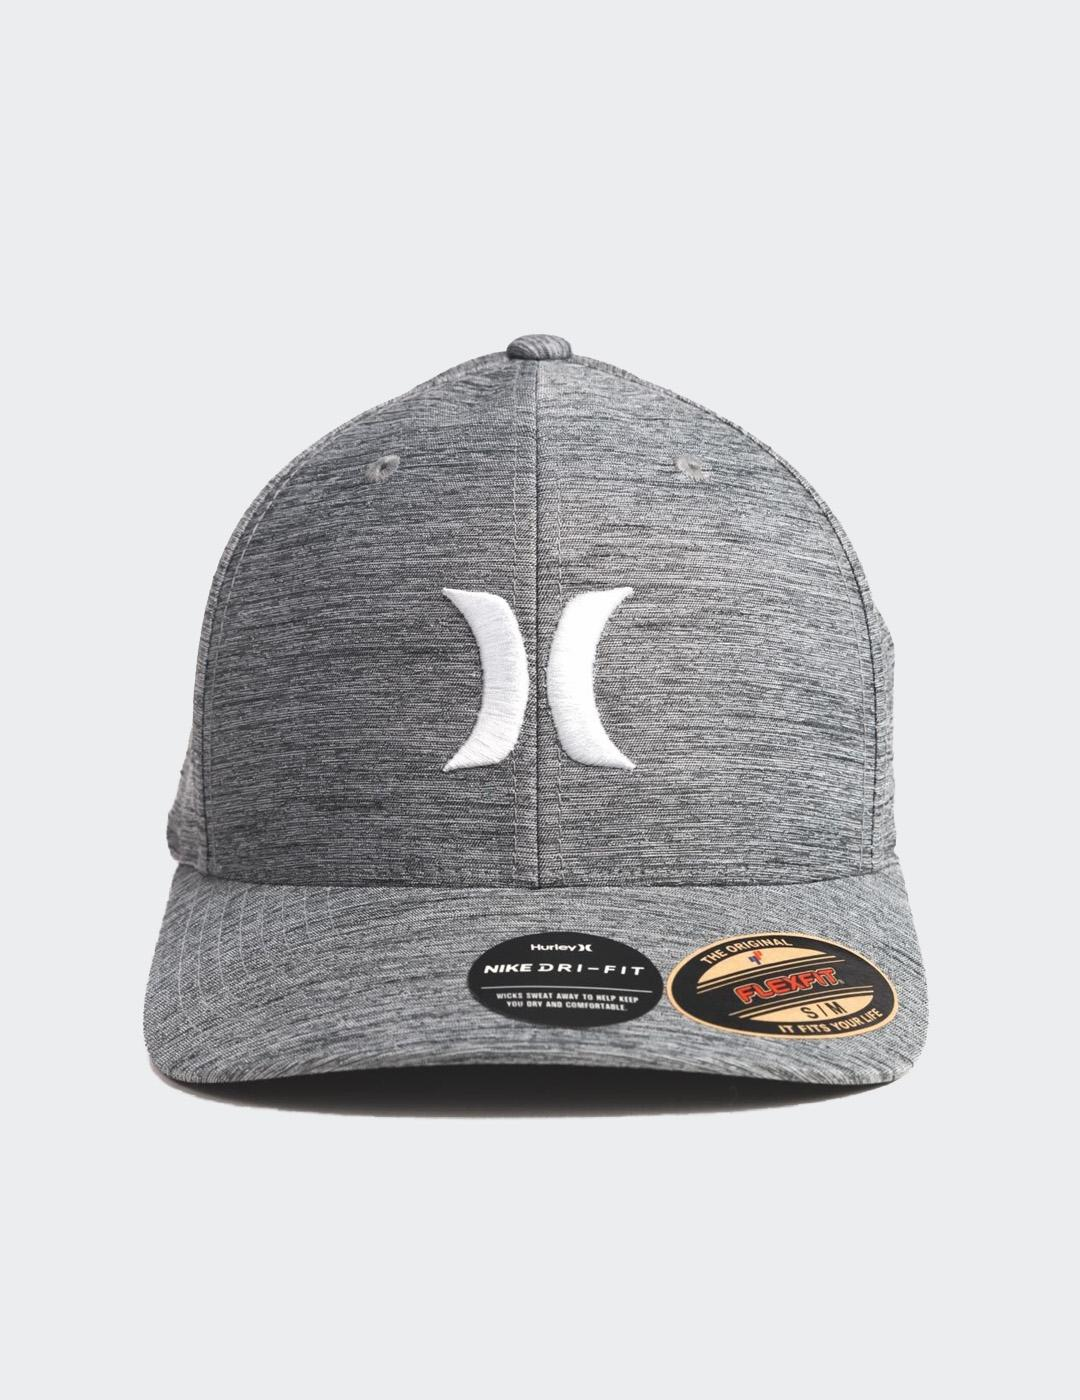 Gorra Hurley DF MARWICK ICON - Dark Smoke Grey